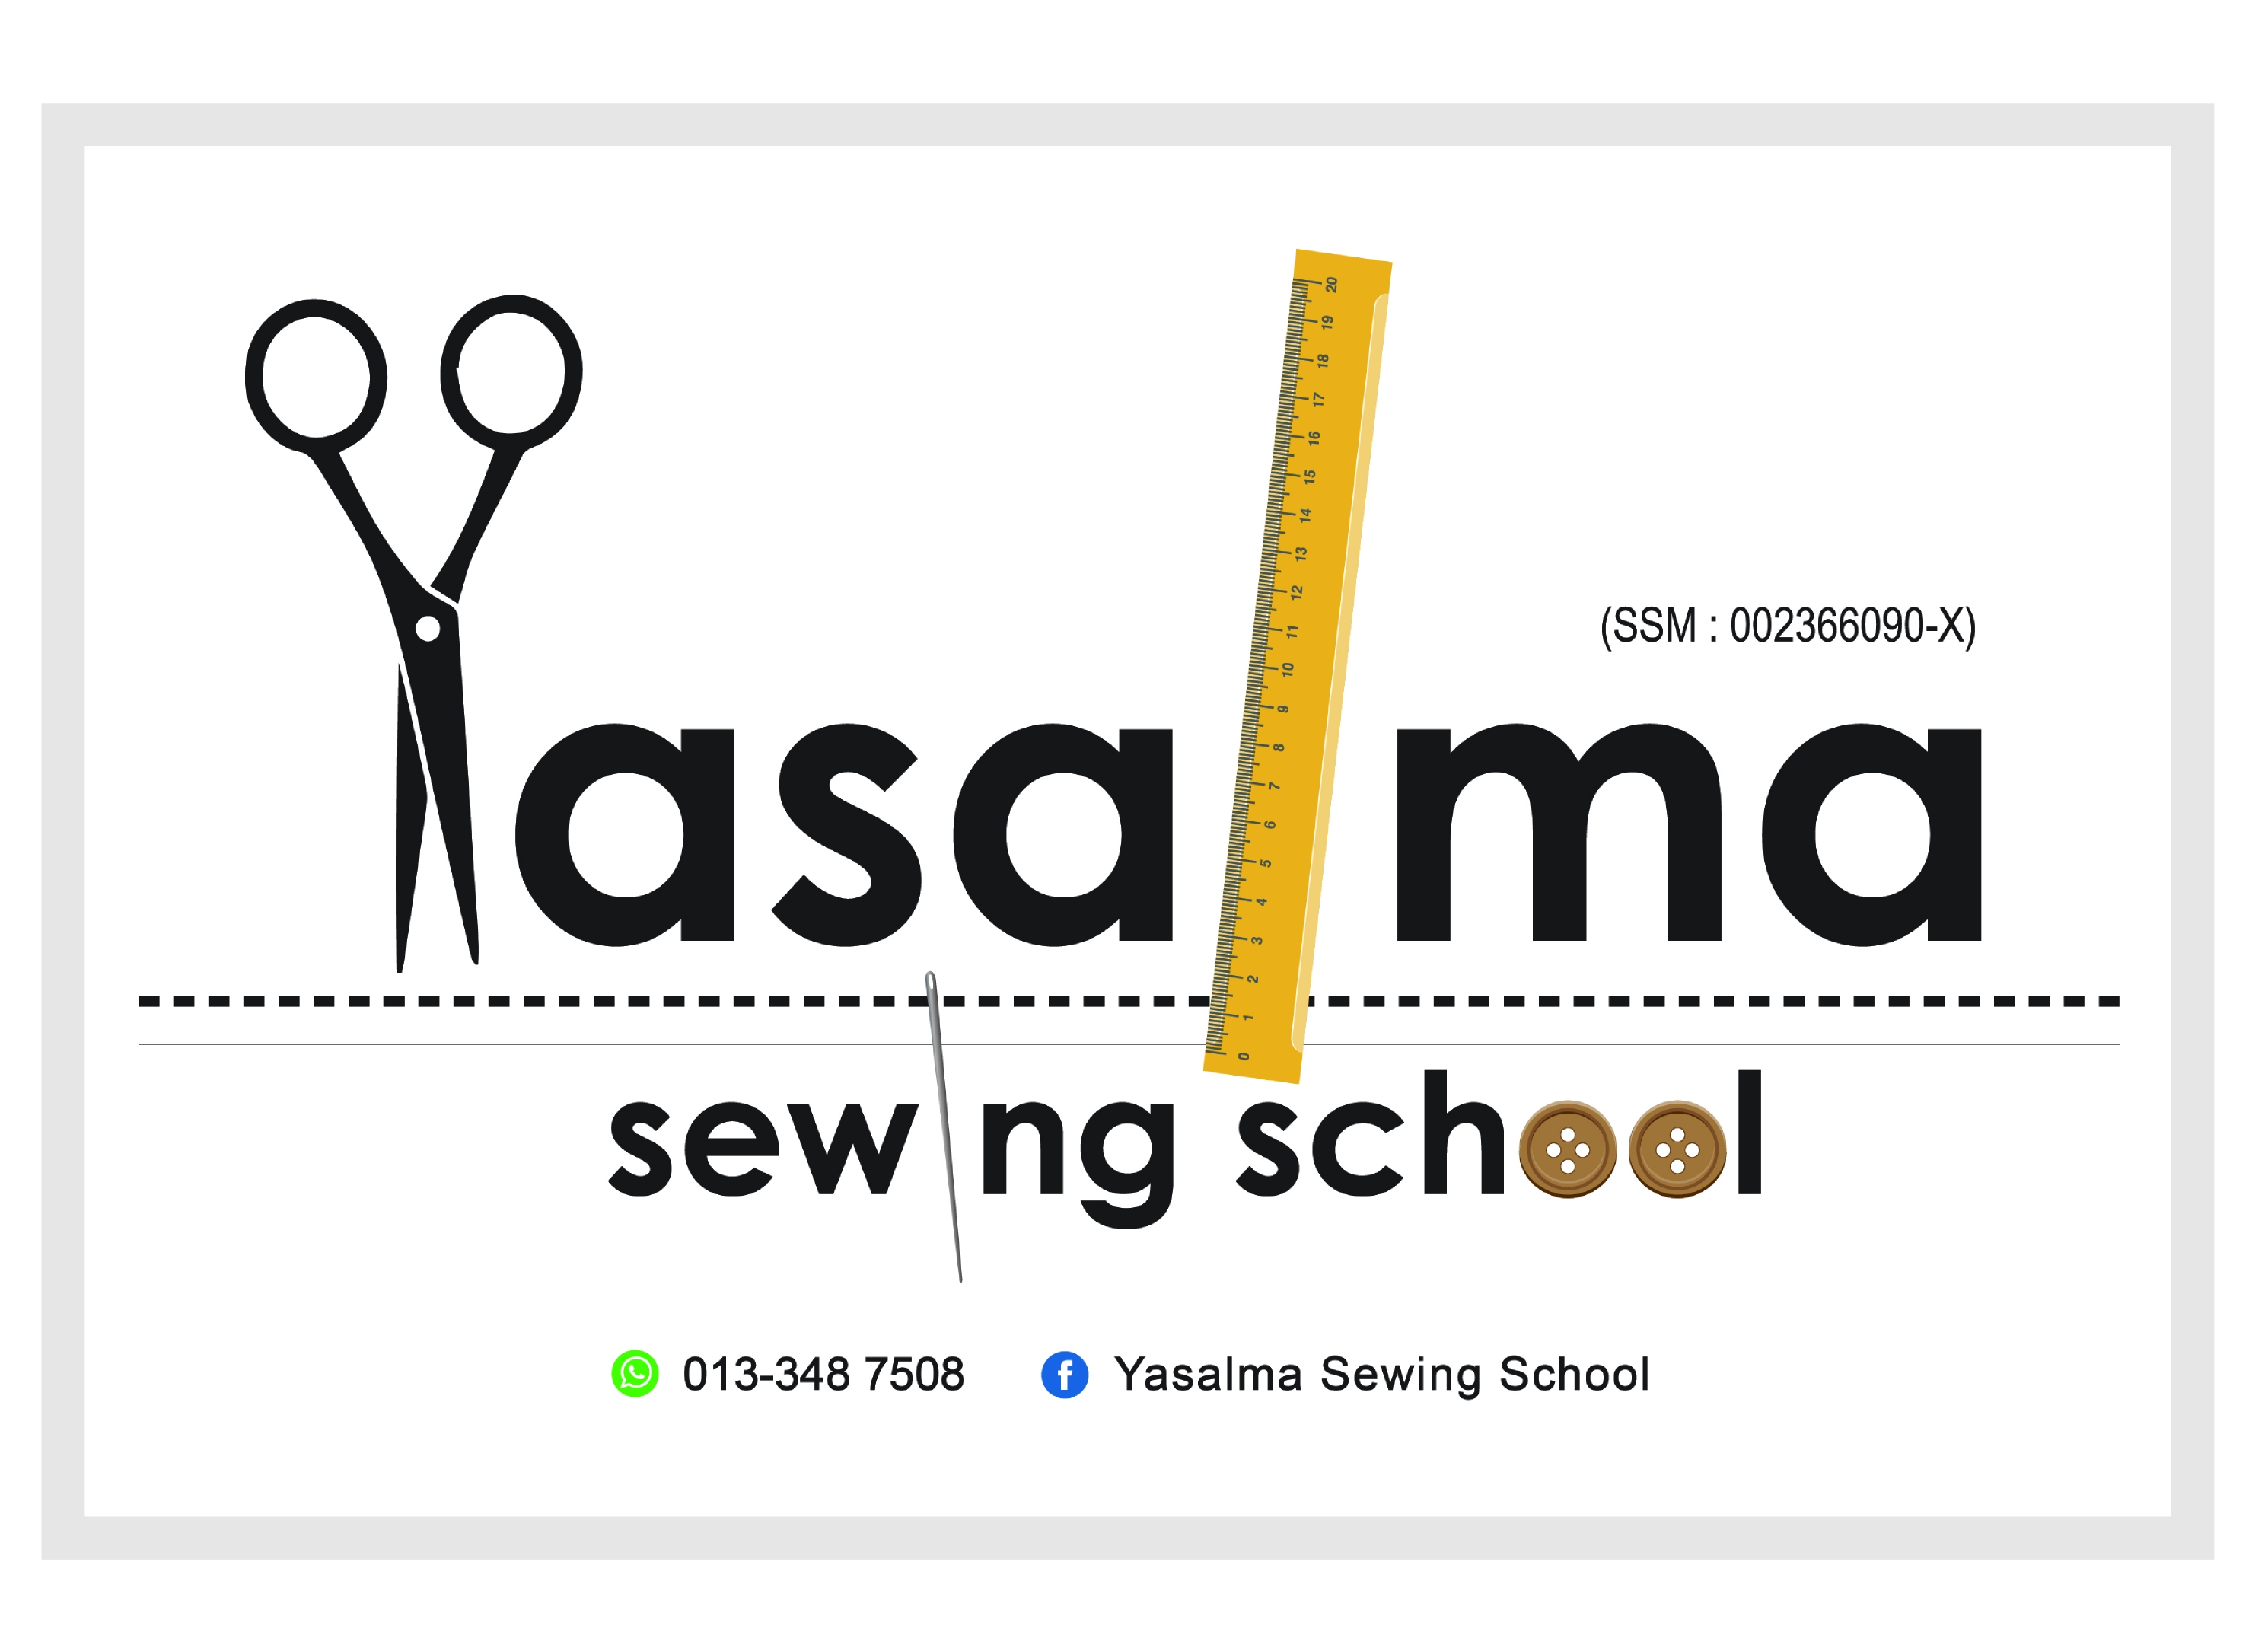 YASALMA SEWING SCHOOL